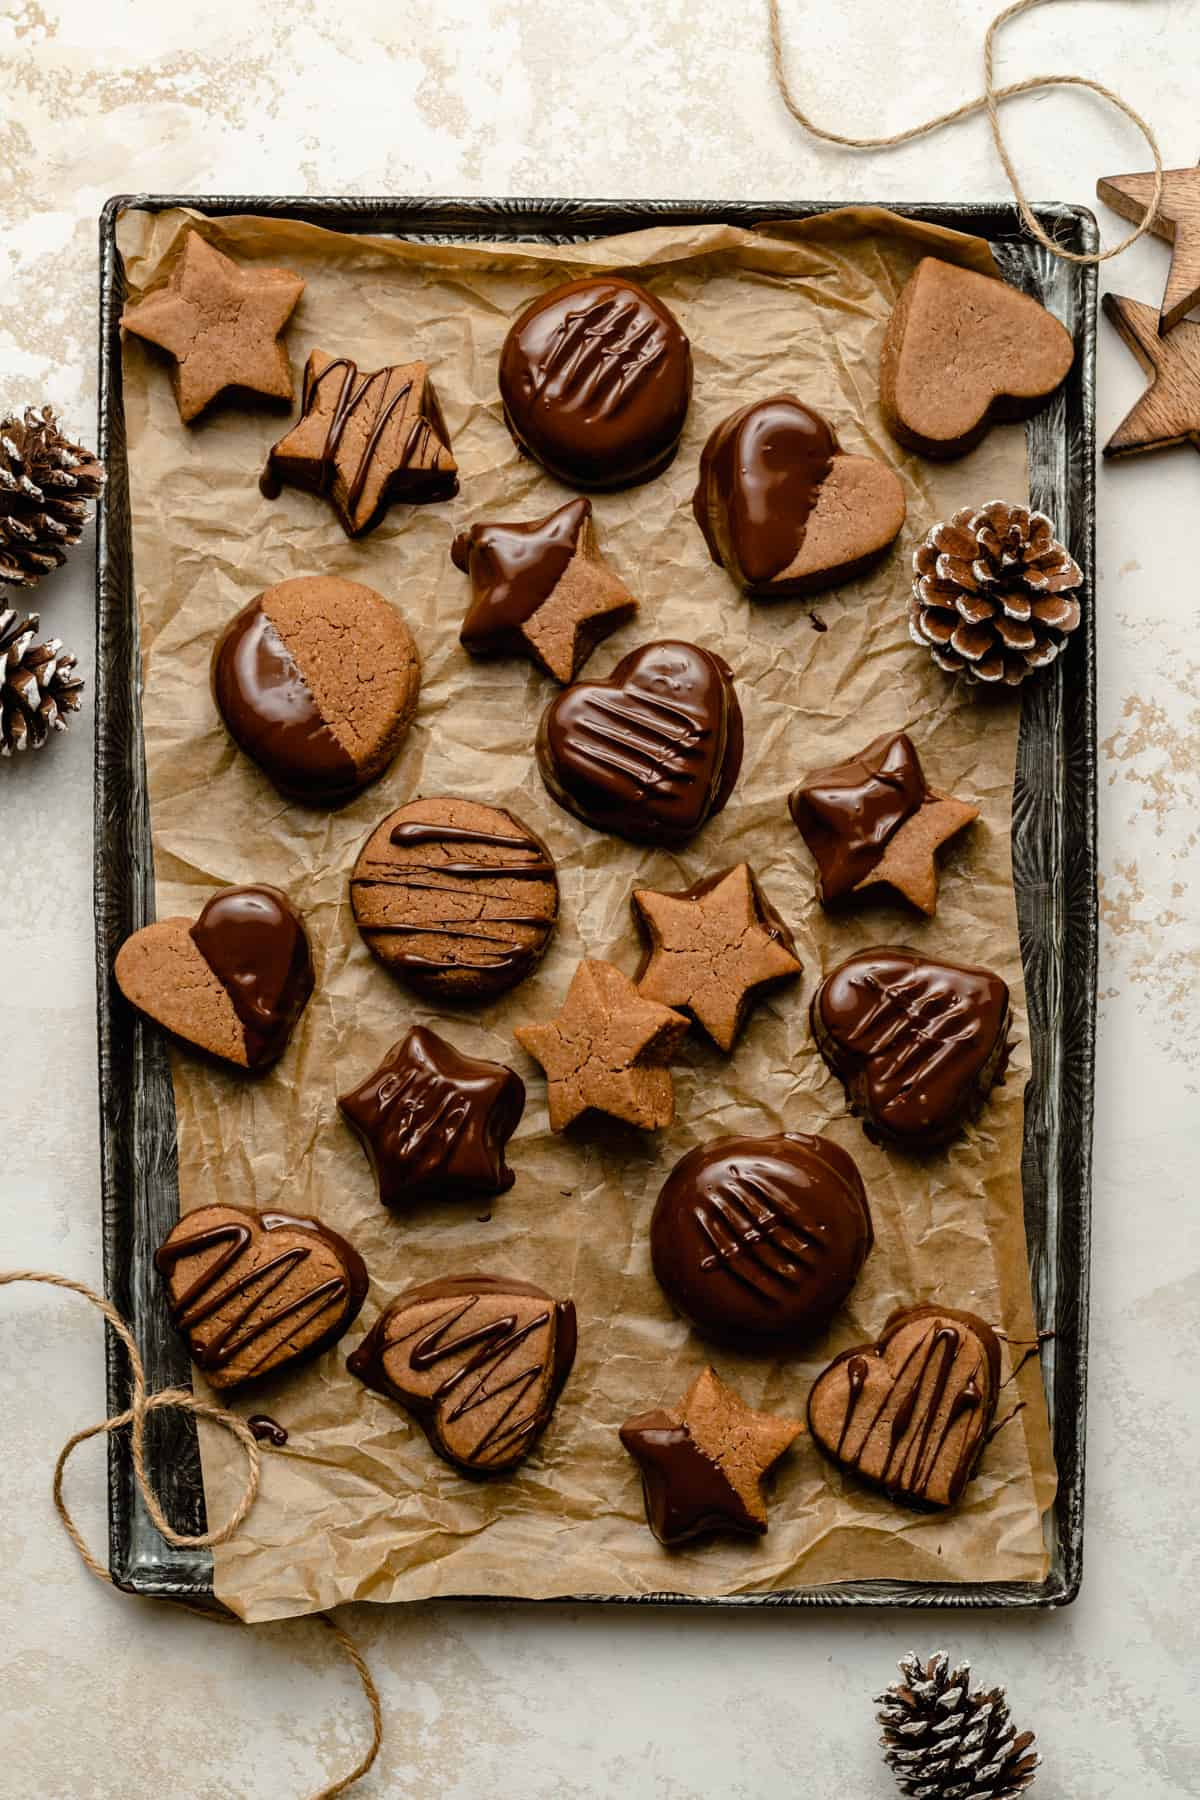 Chocolate Dipped Lebkuchen - these easy ginger spiced cookies make the perfect Christmas treat or edible gift!   eatloveeats.com